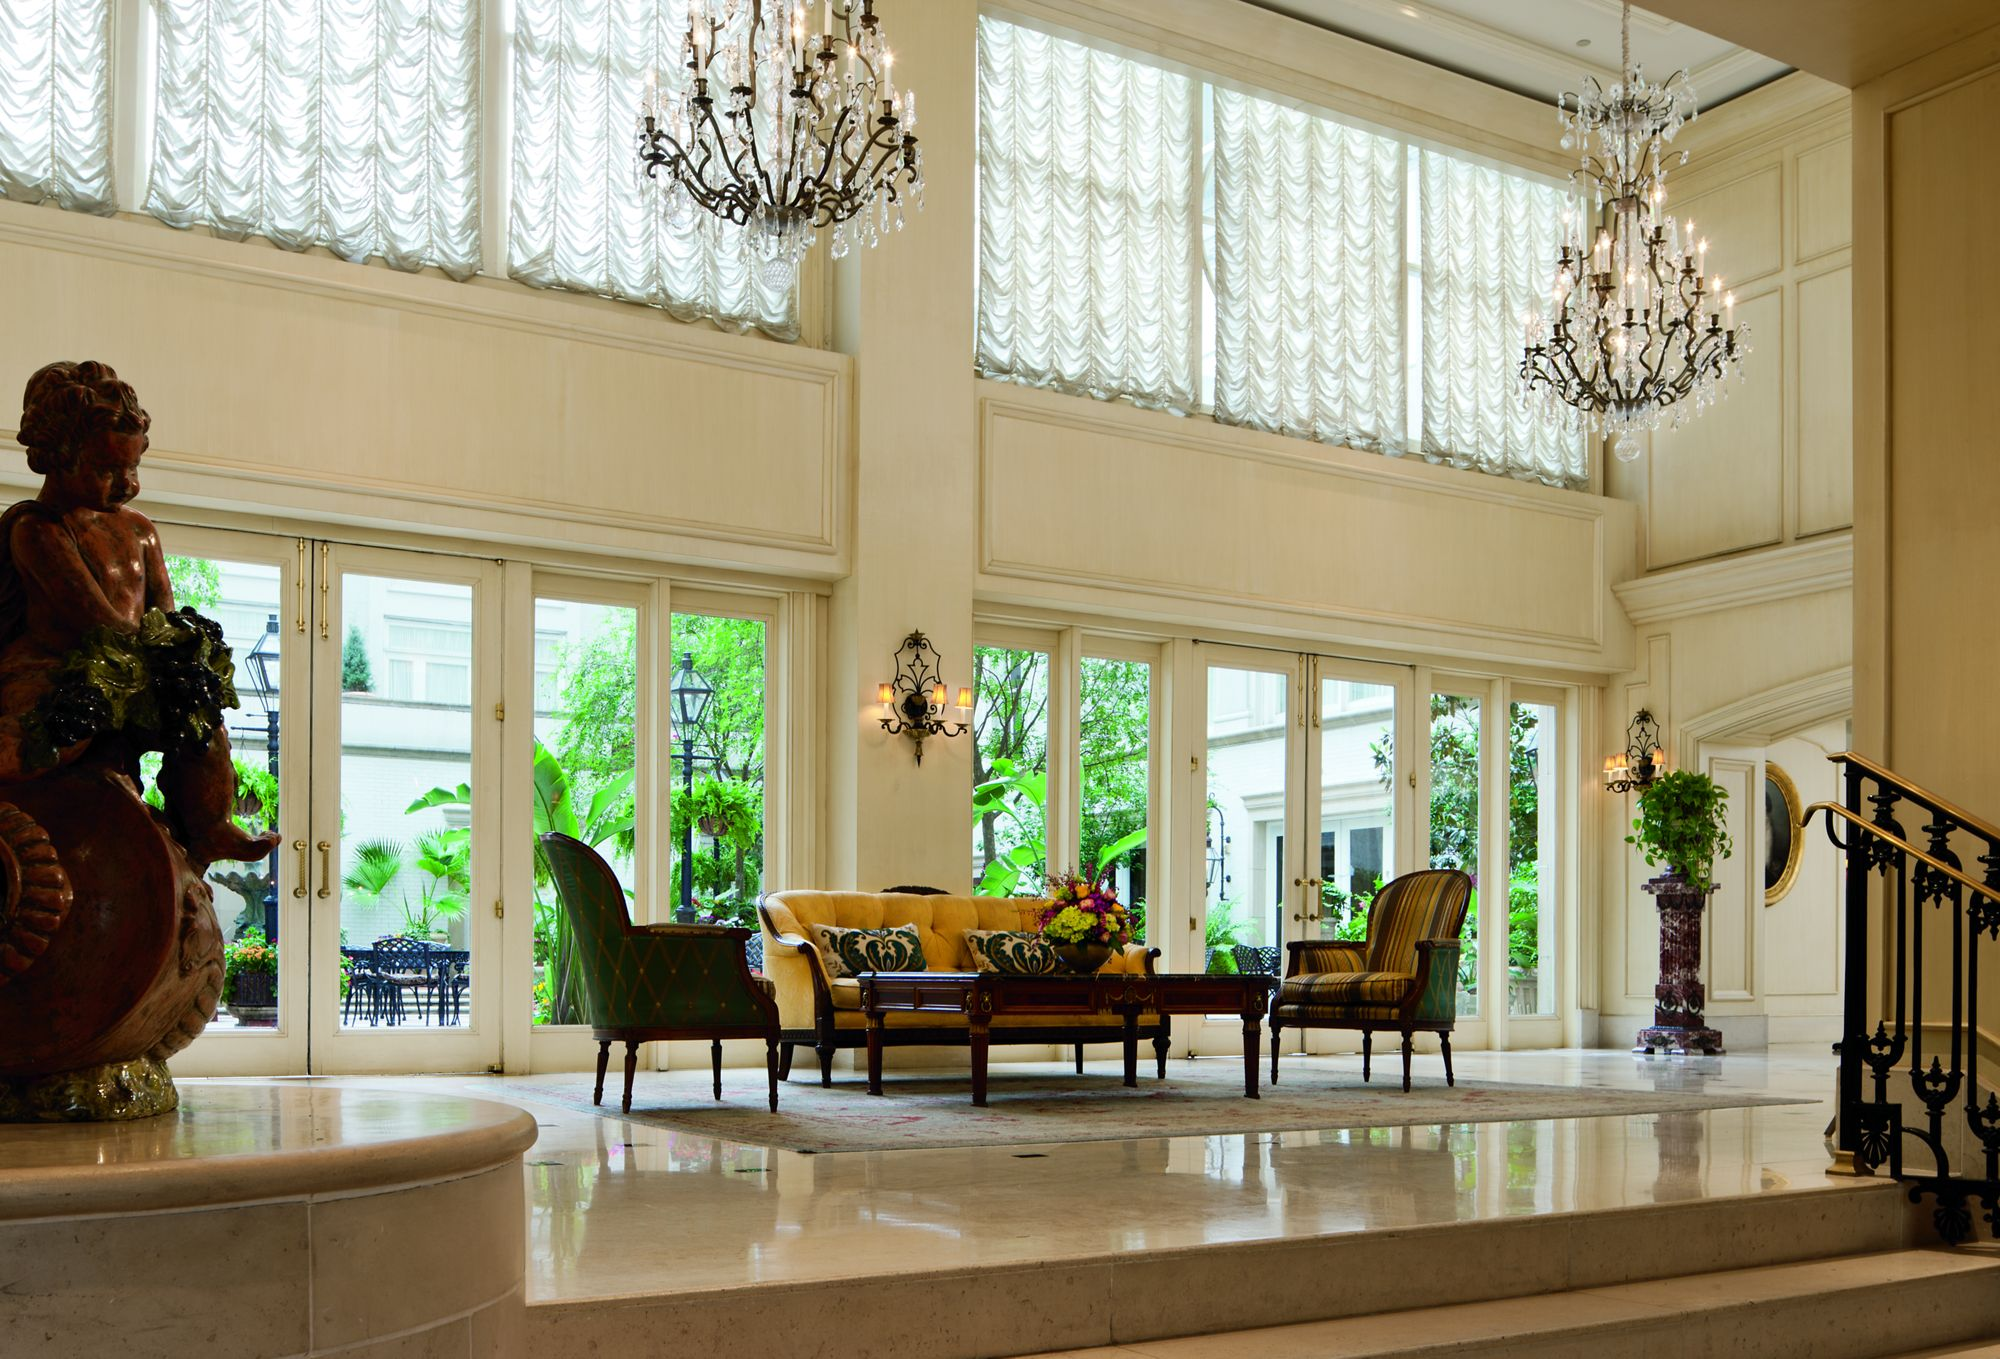 The Ritz-Carlton, New Orleans image 4